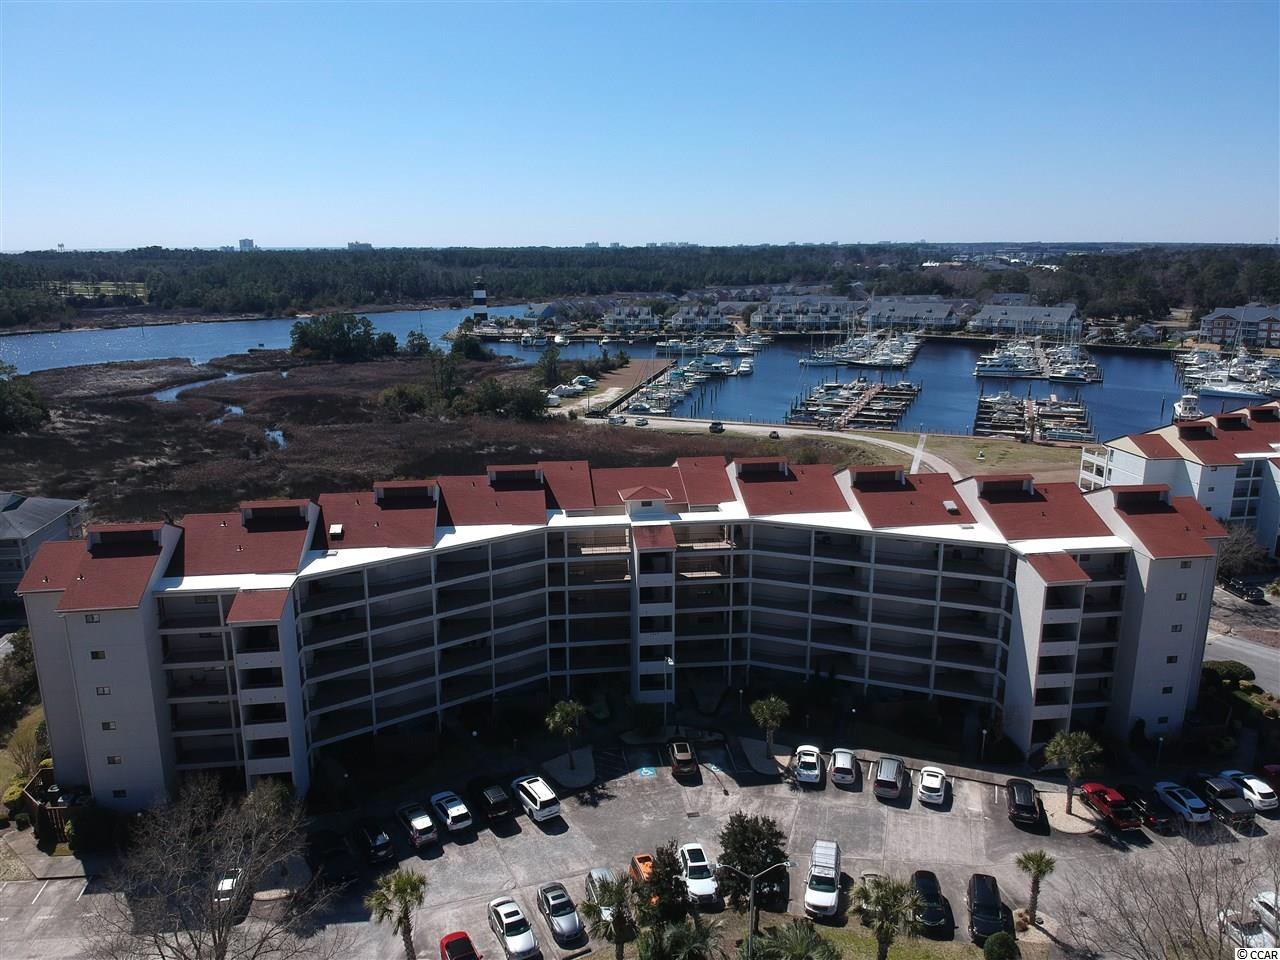 You have to see this rarely available upper floor 3 BR 3 BA condo, overlooking the marsh, intercostal waterway and beautiful Coquina Harbour.  The black and white Iconic Little River Lighthouse is in view as soon as you enter this well appointed condo, waiting for you to call it home.     The condo features wood flooring and coffered ceilings that grab your attention as you enter.  The wood flooring is in the entry and continues into the combination living and dining area.  The kitchen and baths have ceramic flooring with updated cabinetry and fixtures.  All three large bedrooms have carpeted flooring.   This 3 BR model is the split bedroom design, with the master suite on the opposite side of the living area separated by open space from the other two bedrooms.   The master suite features a large bathroom with a ceramic walk in shower and master bedroom with direct access to the large covered patio.  There is a guest bedroom, often referred to as the second master, with an on-suite bath as well.  The third bedroom has a full bath located just outside the bedroom door.  All the room makes for great visits with family and friends.  These buildings are known for their great outdoor living  space which in this model is even larger as it wraps around to the master suite.  The building is constructed of concrete and steel with stucco providing for the ability to utilize your gas grill on the large oversized deck, unlike most condominiums.  The balcony/porch has room for plenty of seating, making for unusual opportunities to enjoy the beautiful SC weather while viewing you prized boat in the harbour.  Should Dark Skies and winds arrive, the patio has built in storm shutters.  This home also boasts of a large indoor storage room directly off of the foyer as well as a large laundry directly off of the kitchen.  Little River is a small fishing village that has remained unincorporated and has a vibrant waterfront on the intracoastal and gambling casino boats to enjoy beyond th